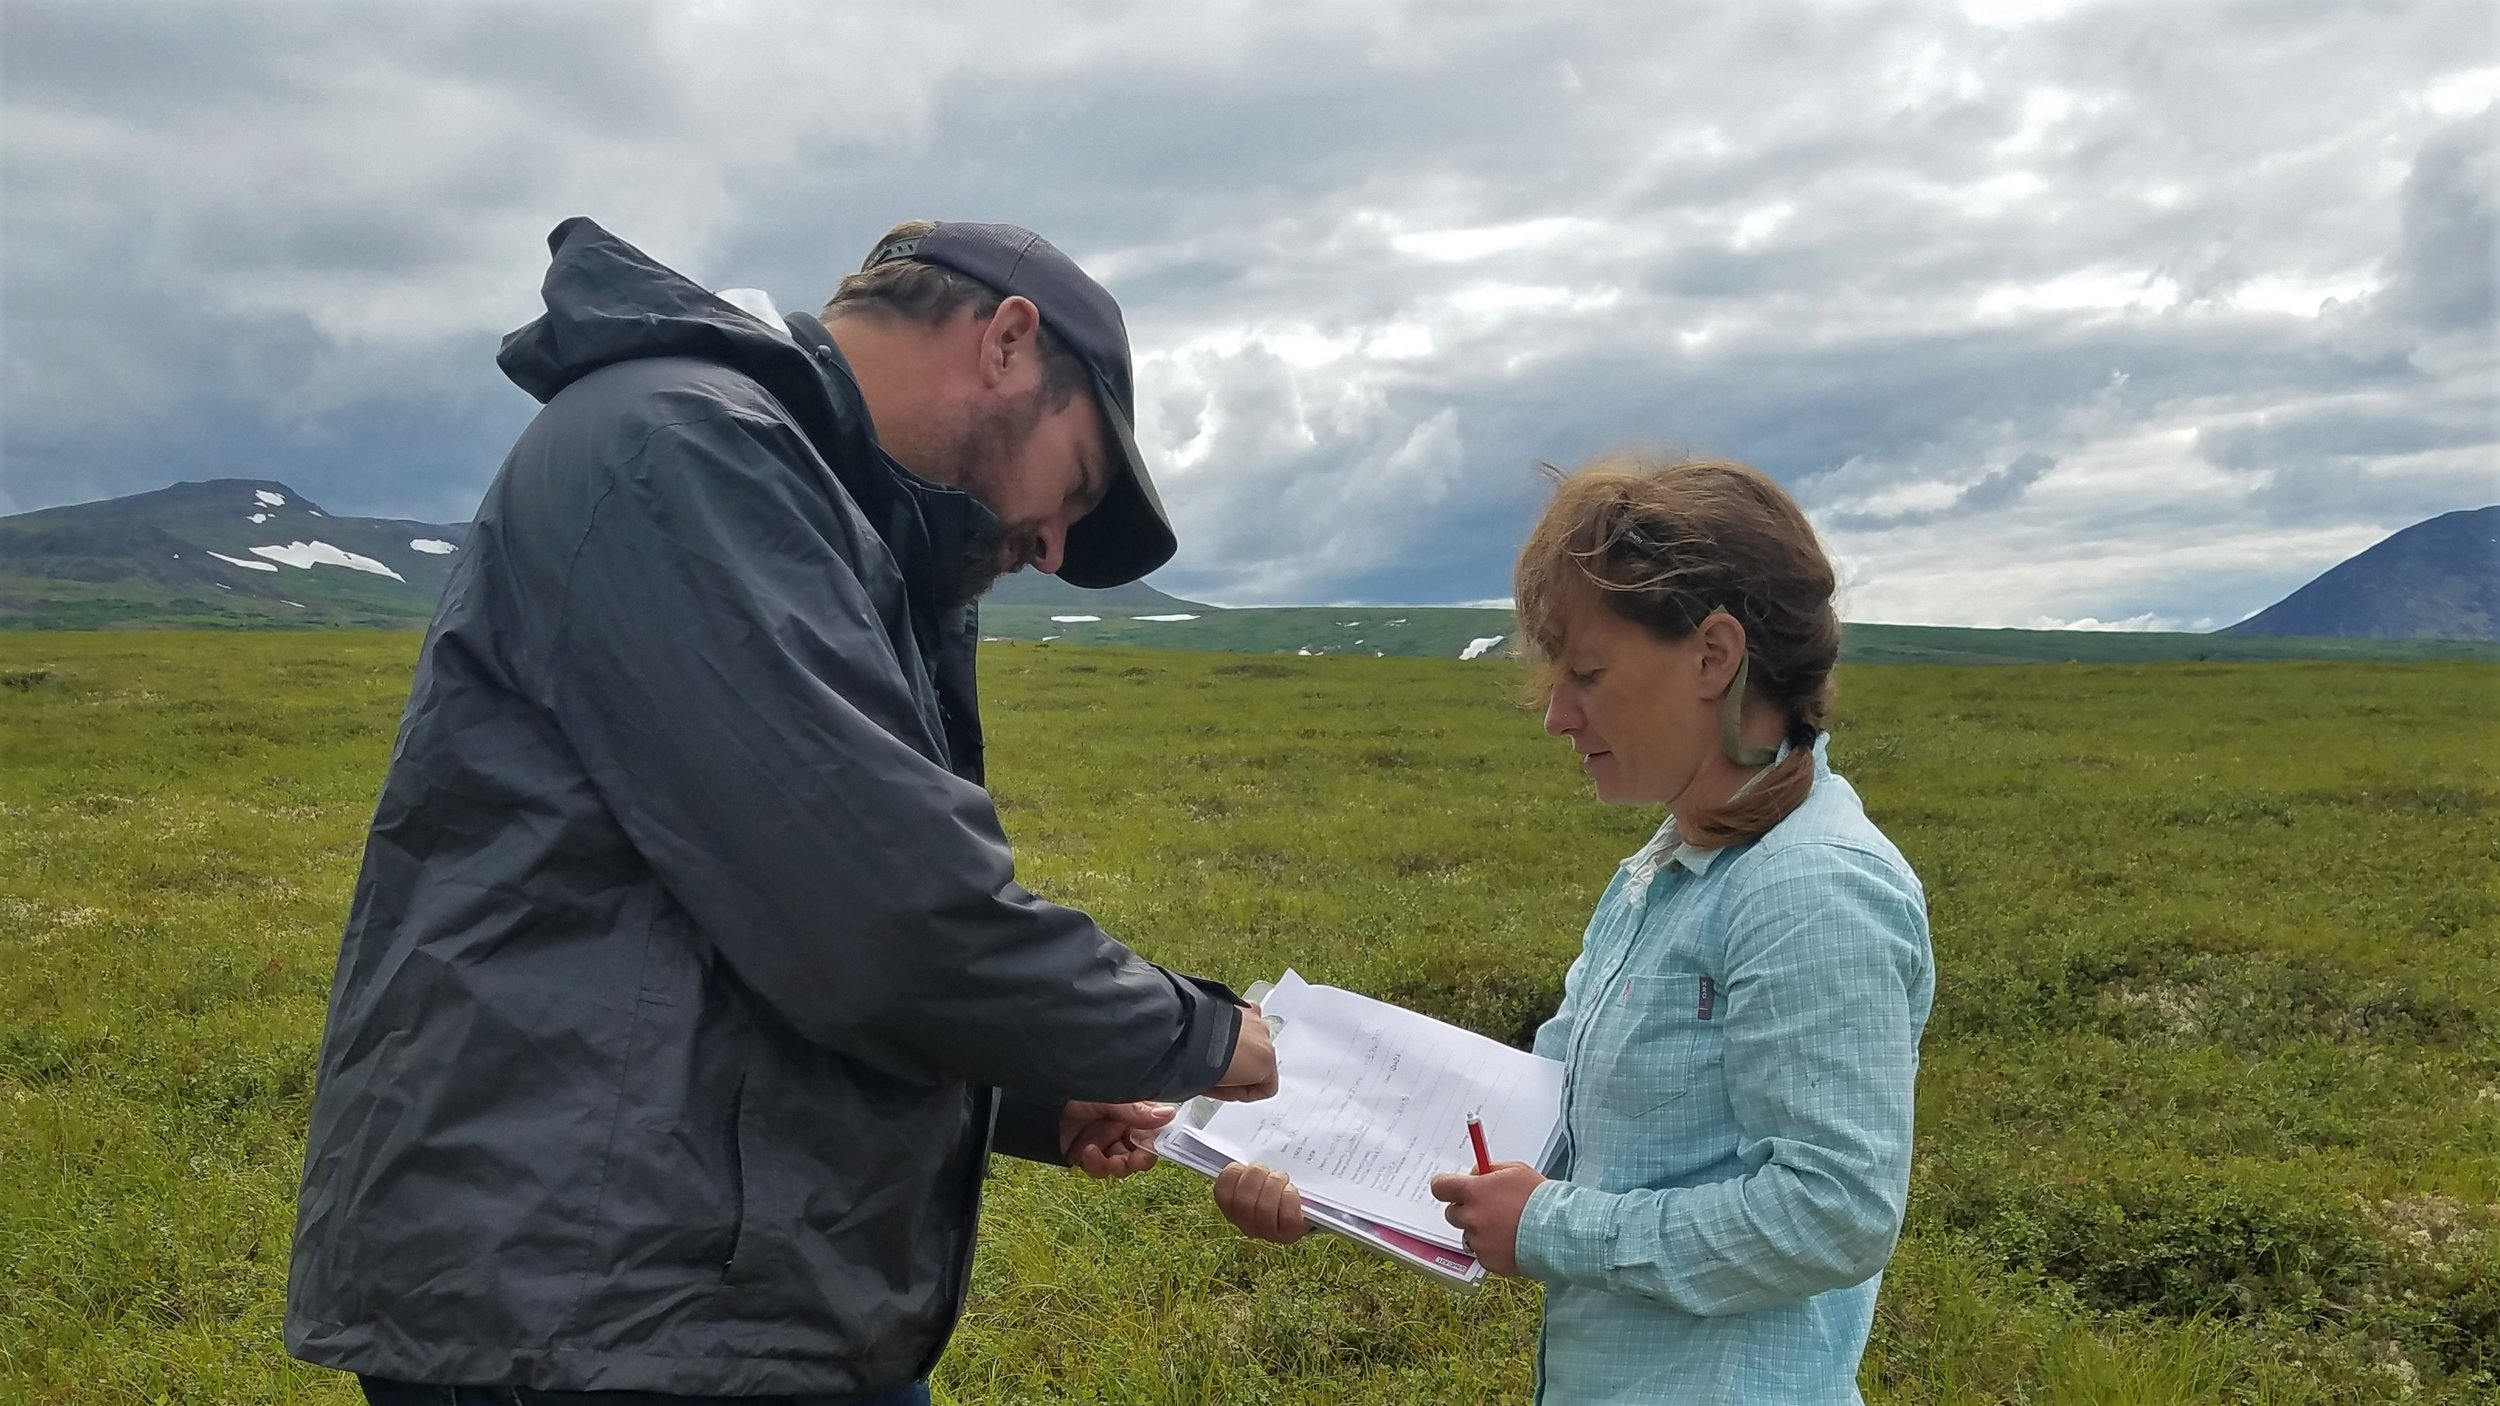 Kevin Stark (Saint Mary's University of Minnesota) and Elizabeth Powers (U.S. Fish and Wildlife Service - Alaska) discussing field indicators for wetlands.  Photo Credit: Andy Robertson